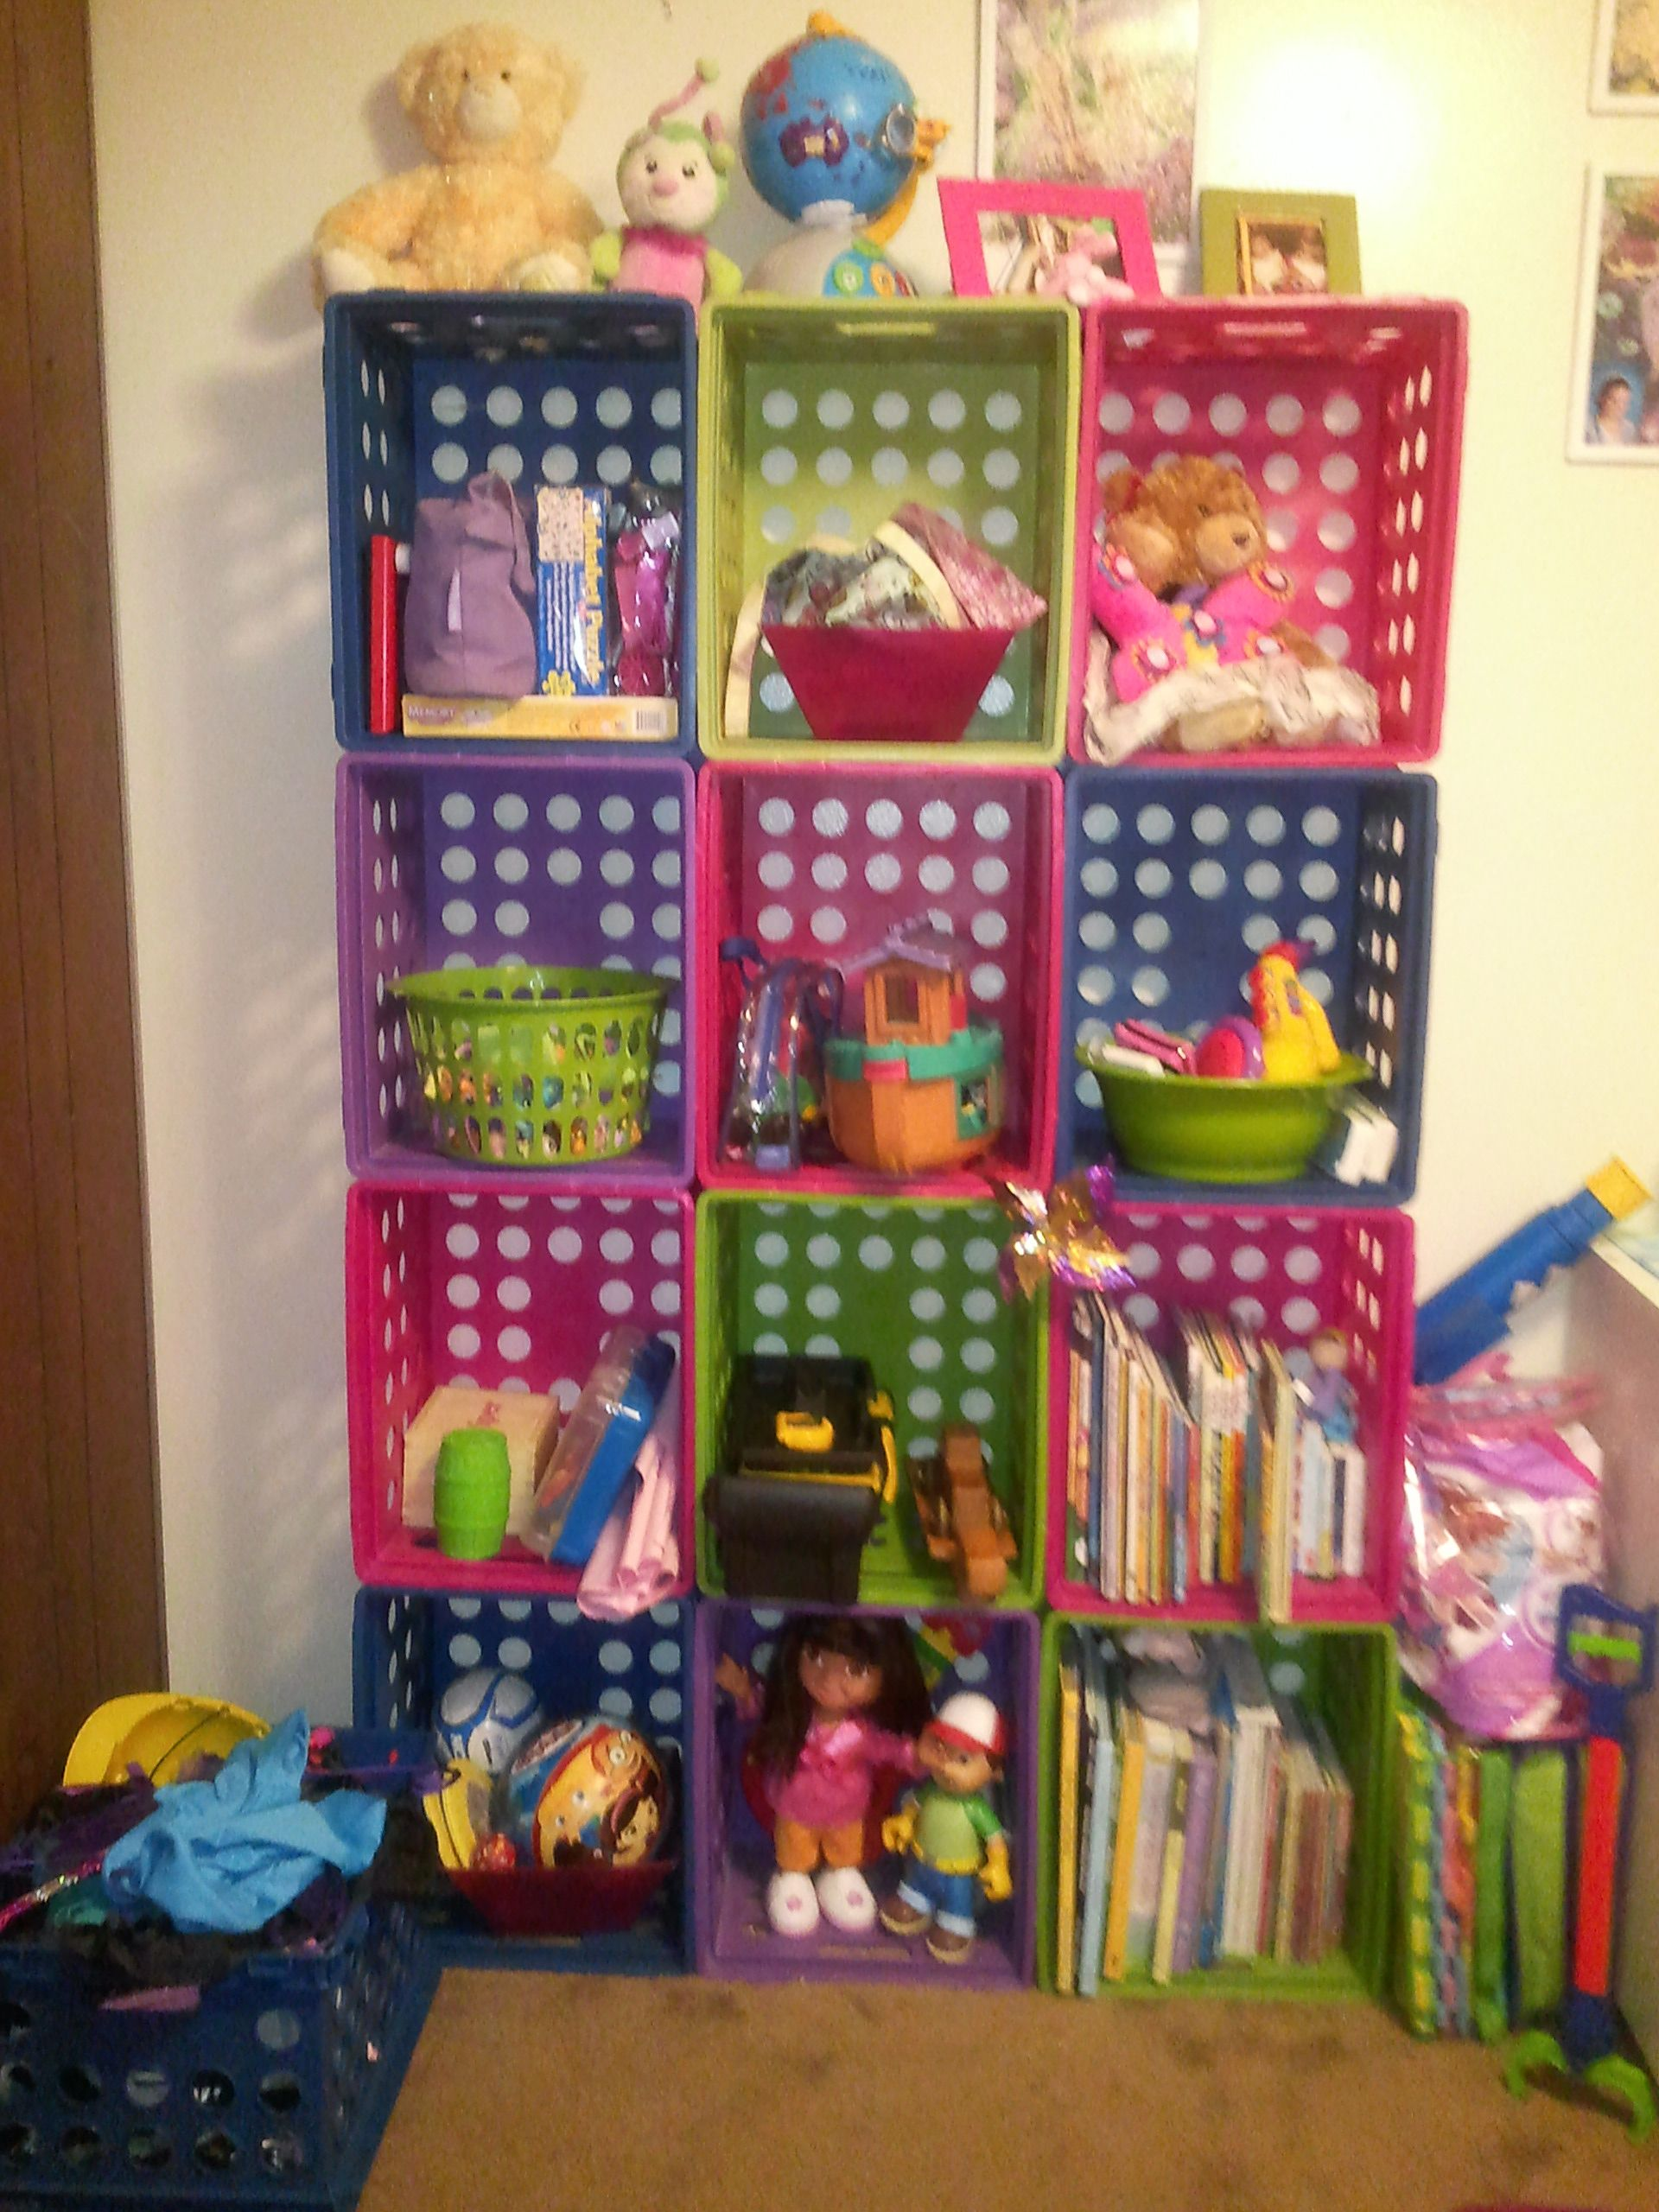 Colorful Milk Crates Make Great Storage Shelves For Kids Room Kids Room Organization Kids Rooms Diy Storage Kids Room